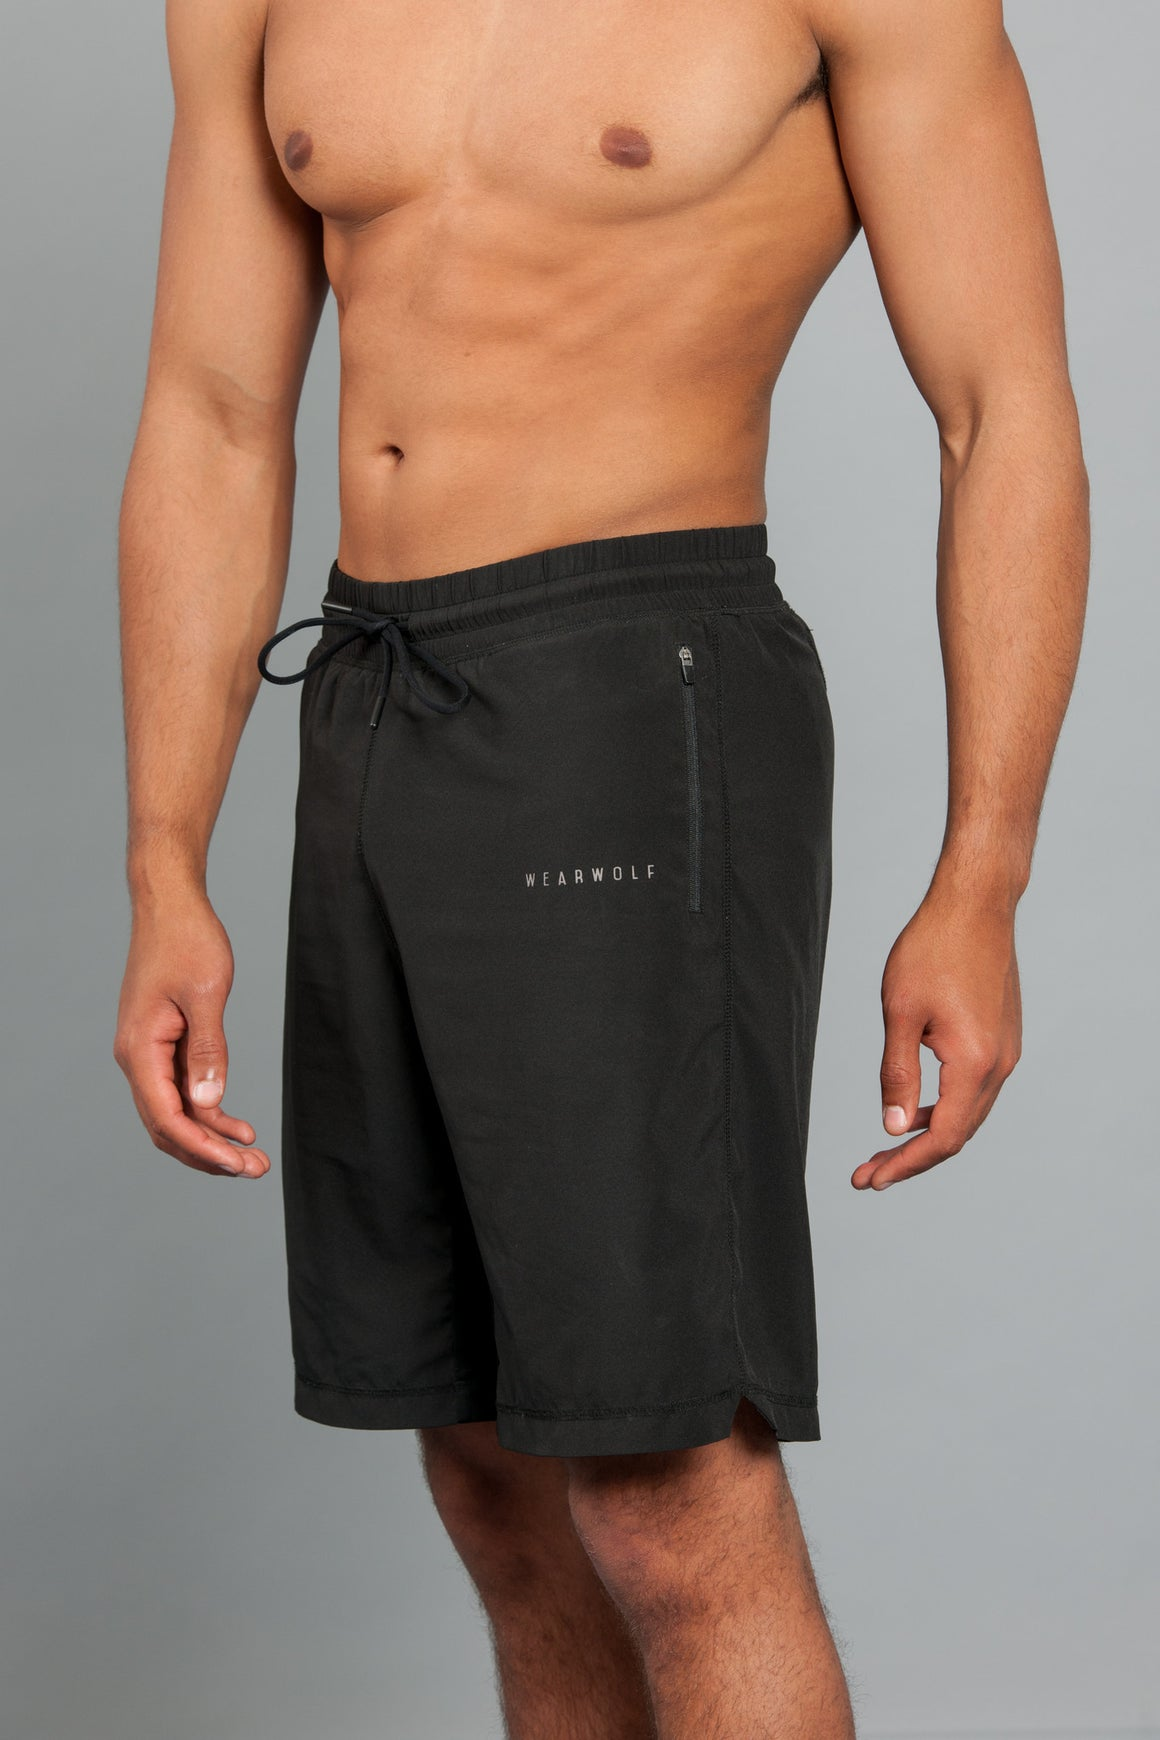 WearWolf AirTech Shorts - Black - WearWolf Clothing UK